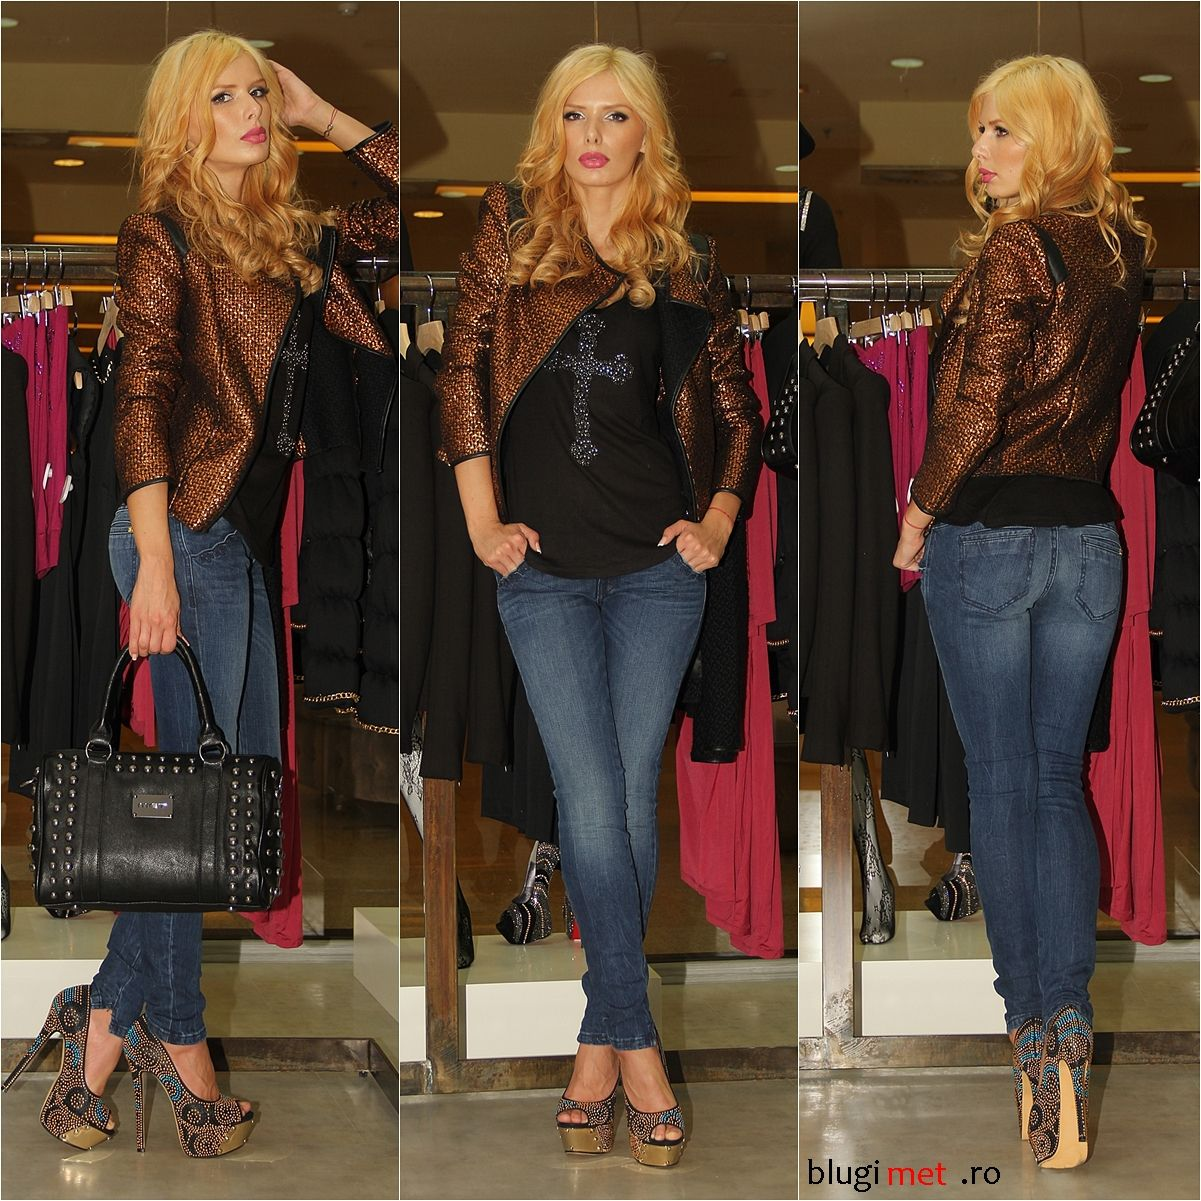 MET *Look of the day*  - sacou SALOME - bluza RIMMASF - blugi CHINO POCKET - geanta STUDFULL - pantofi DIAVOLI & DIAMANTI